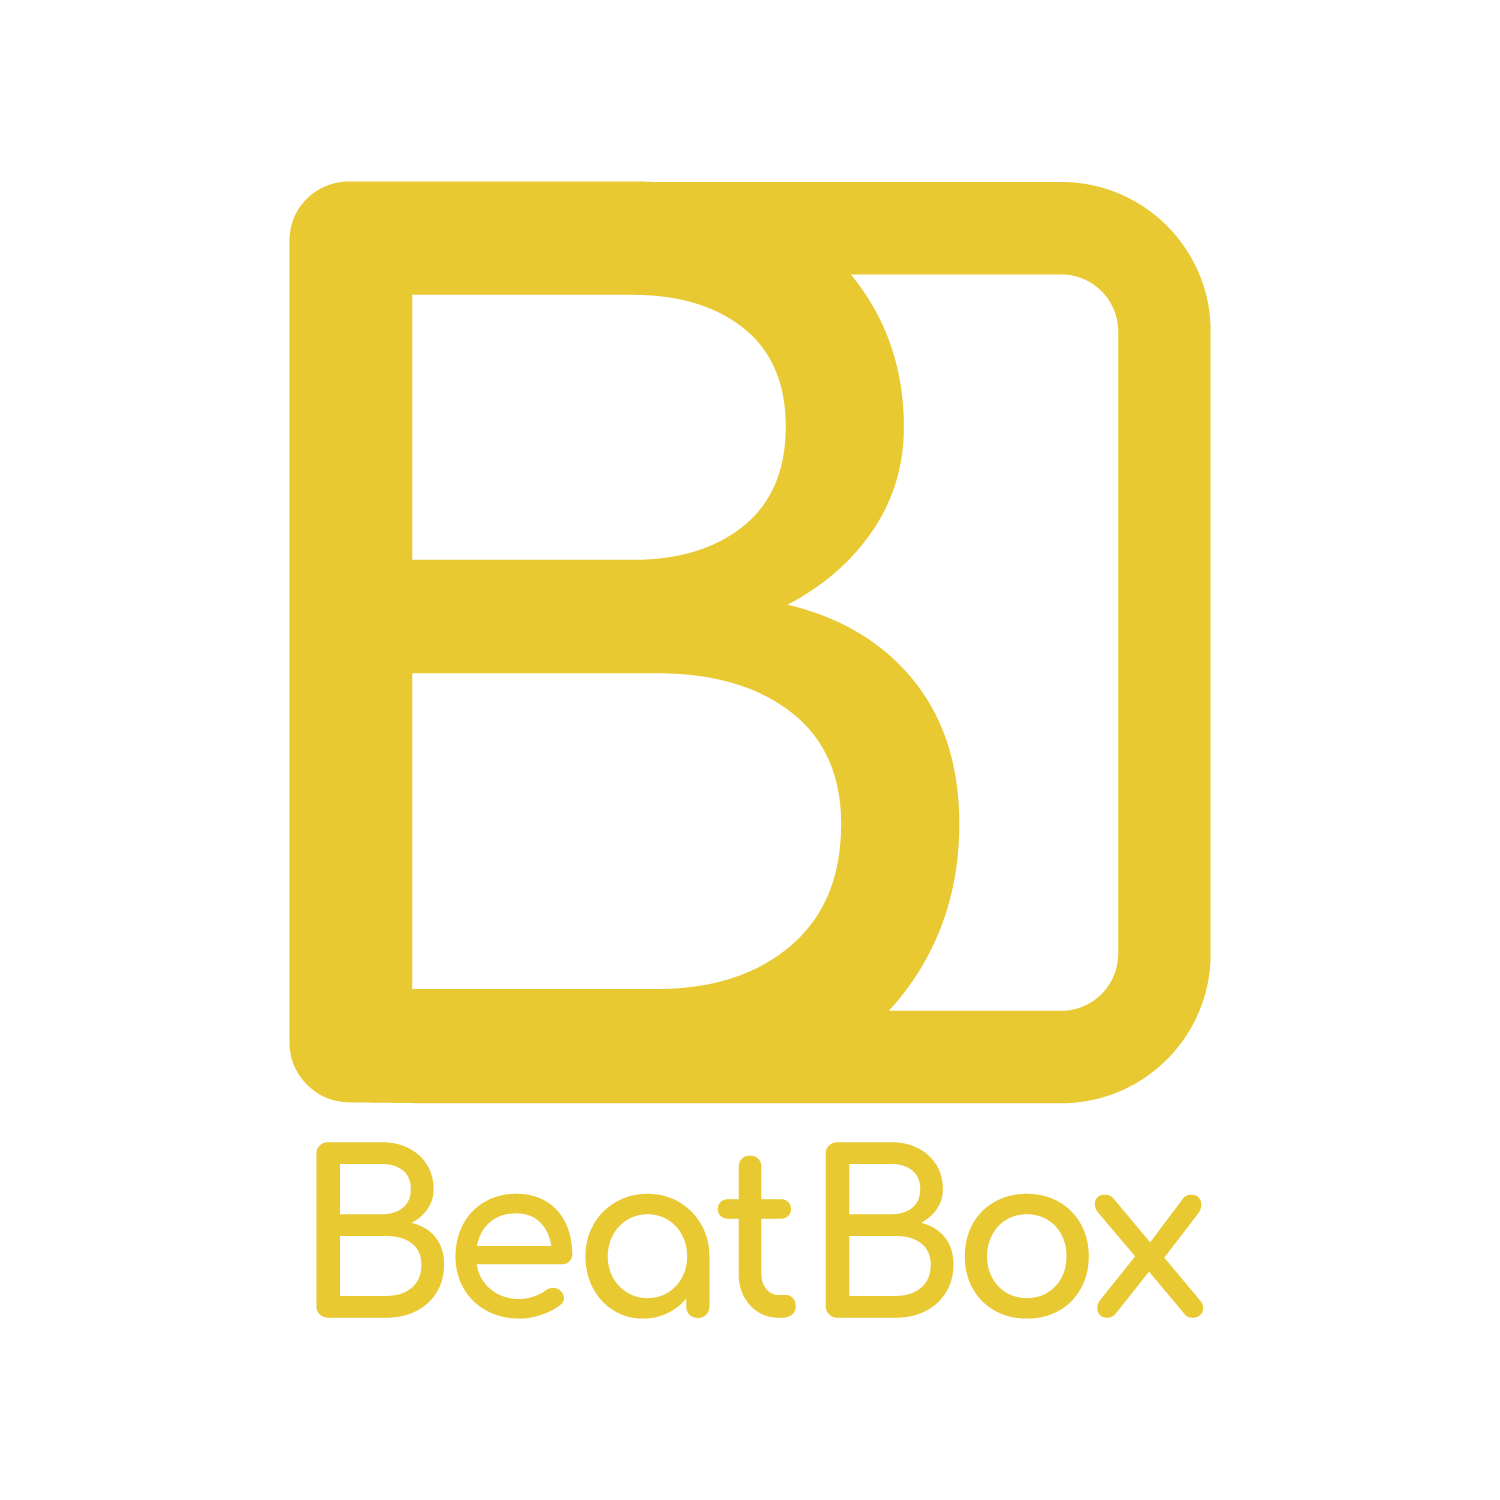 Beatbox Logo Preview 2-01.png